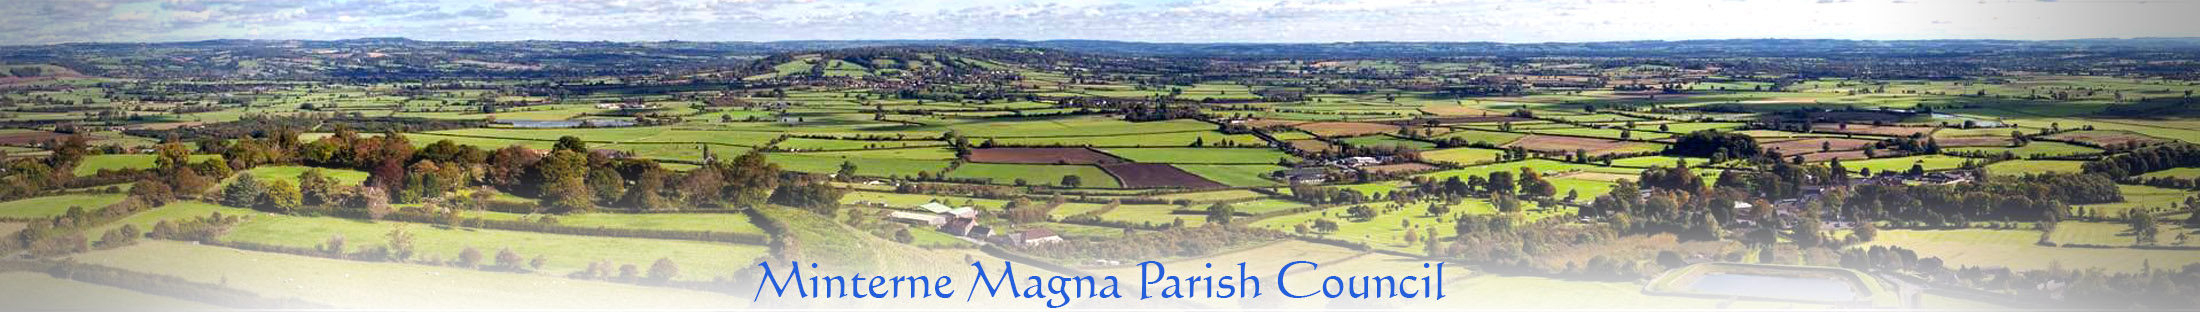 Header Image for Minterne Magna Parish Council